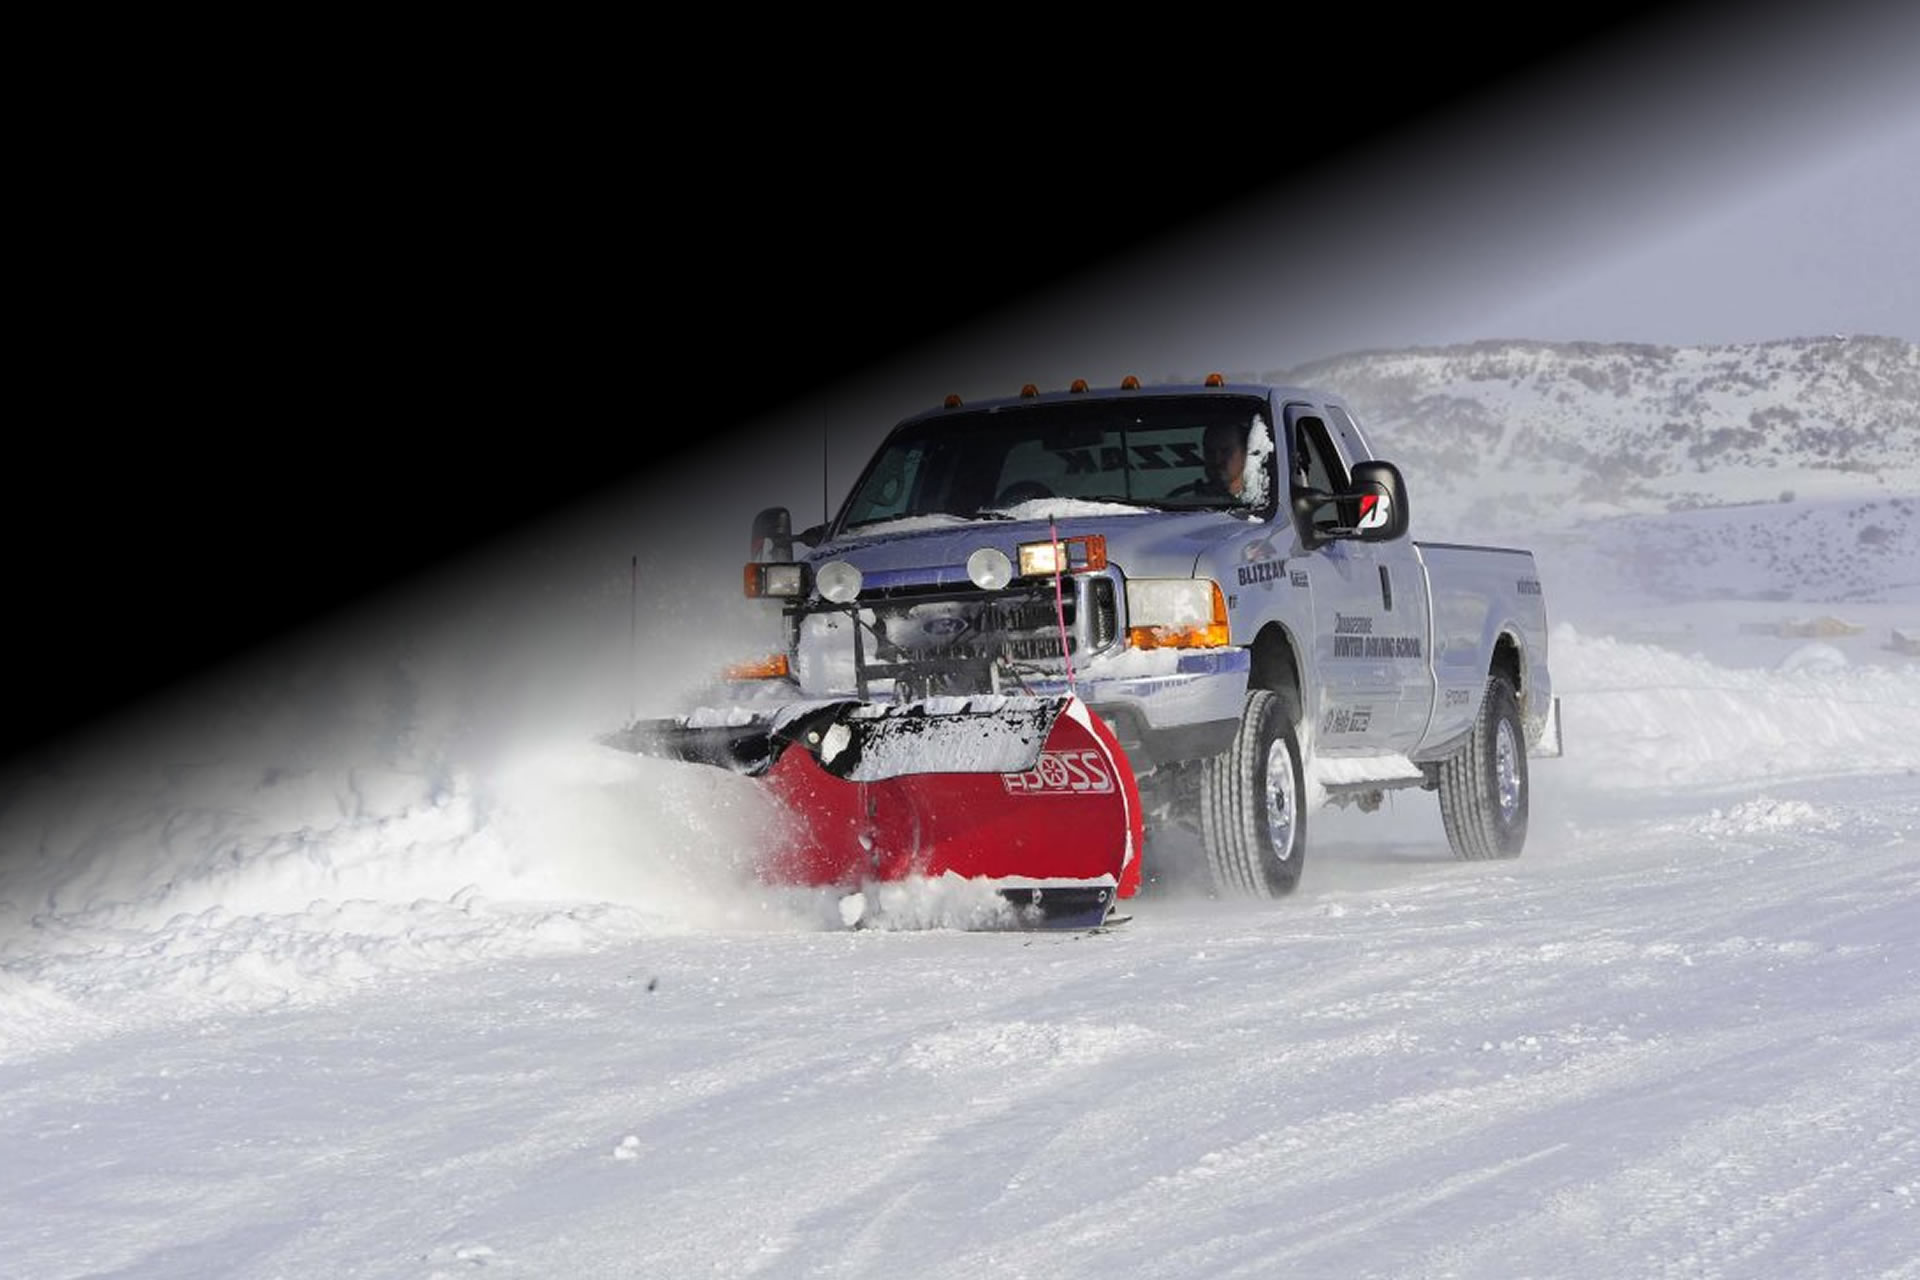 https://homesweethomelandscaping.com/sites/default/files/revslider/image/Slide03-Snow-Plowing_0.jpg